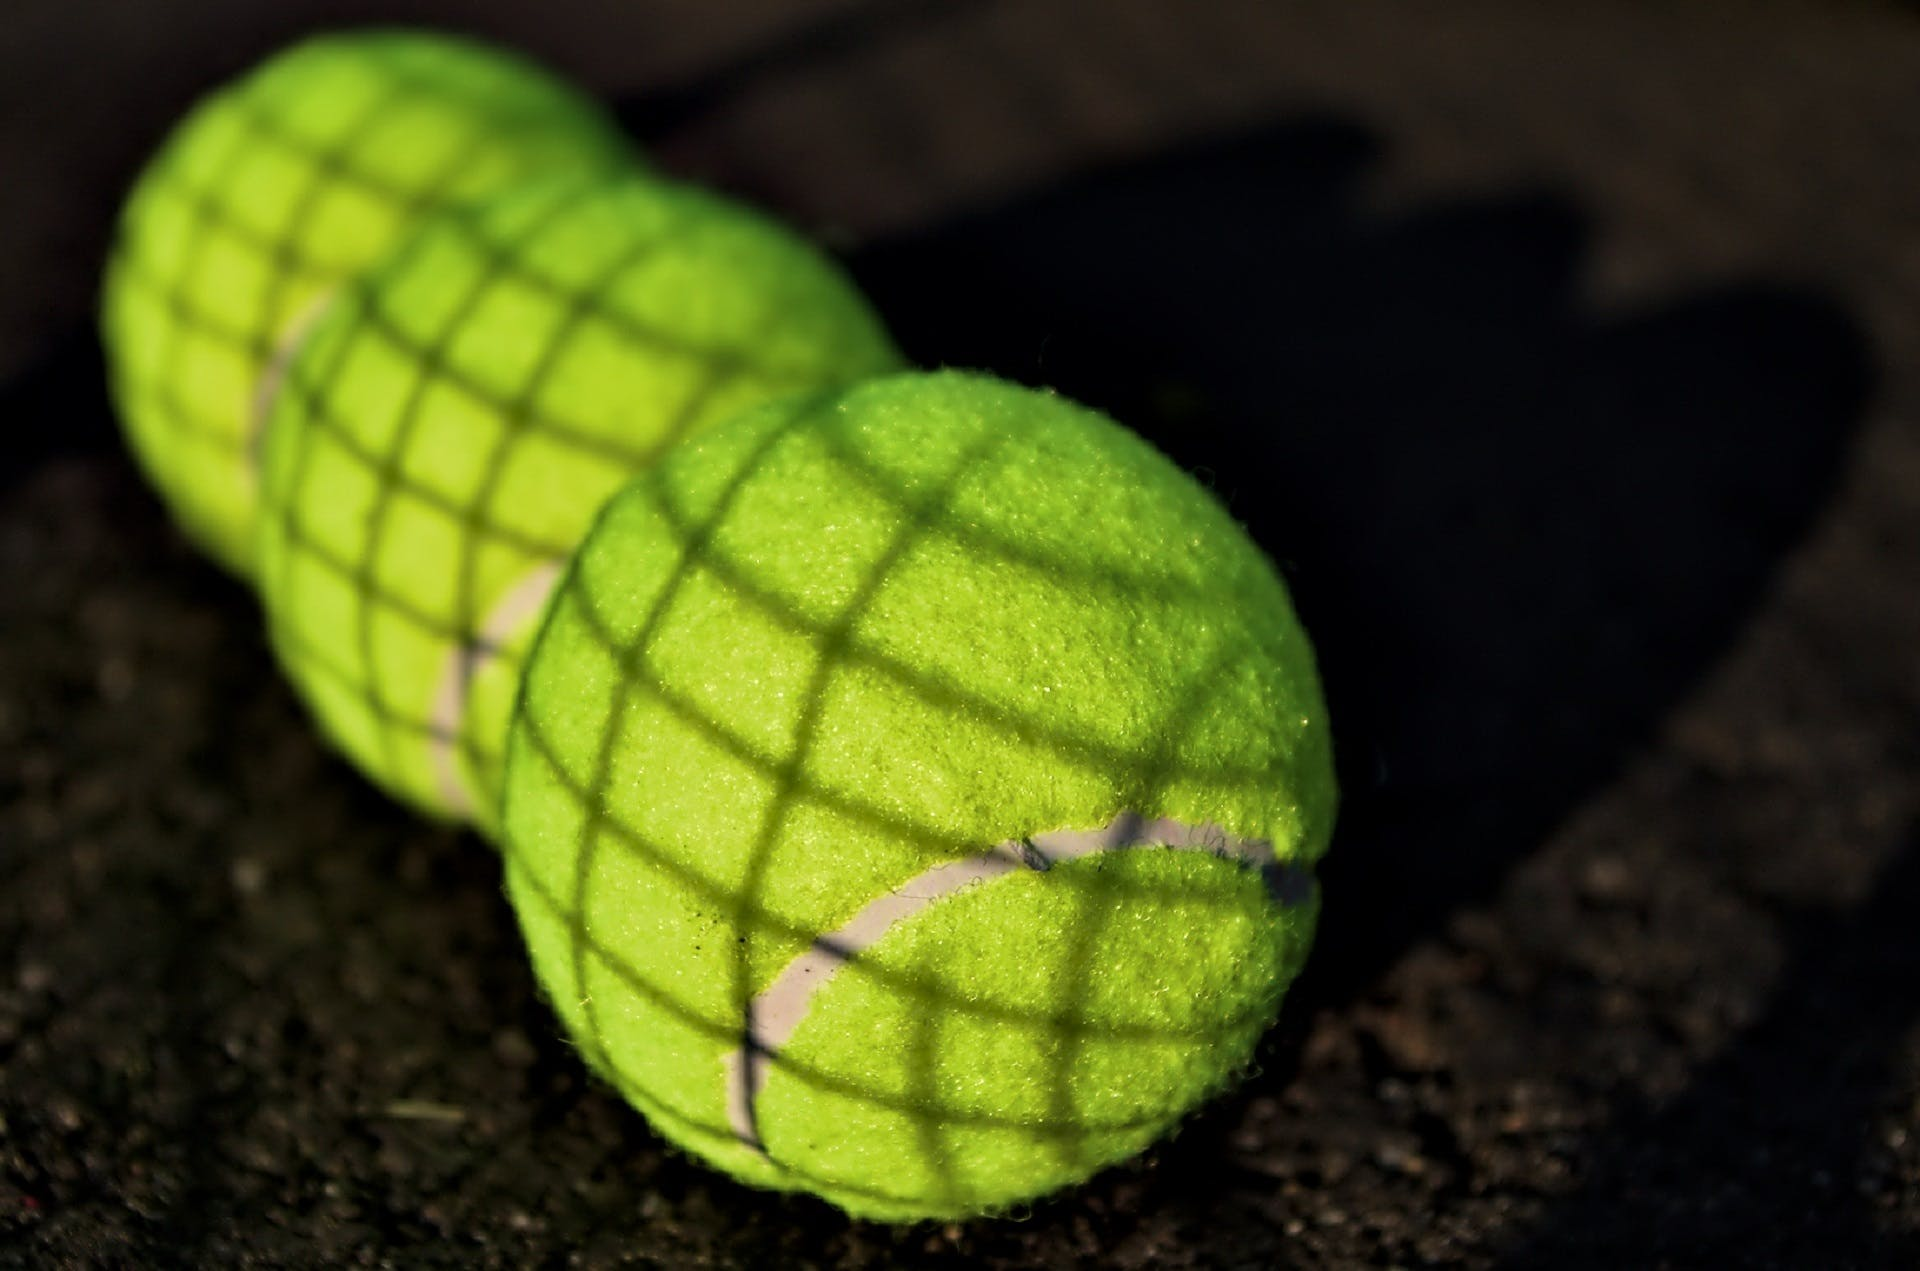 Three Green Tennis Balls